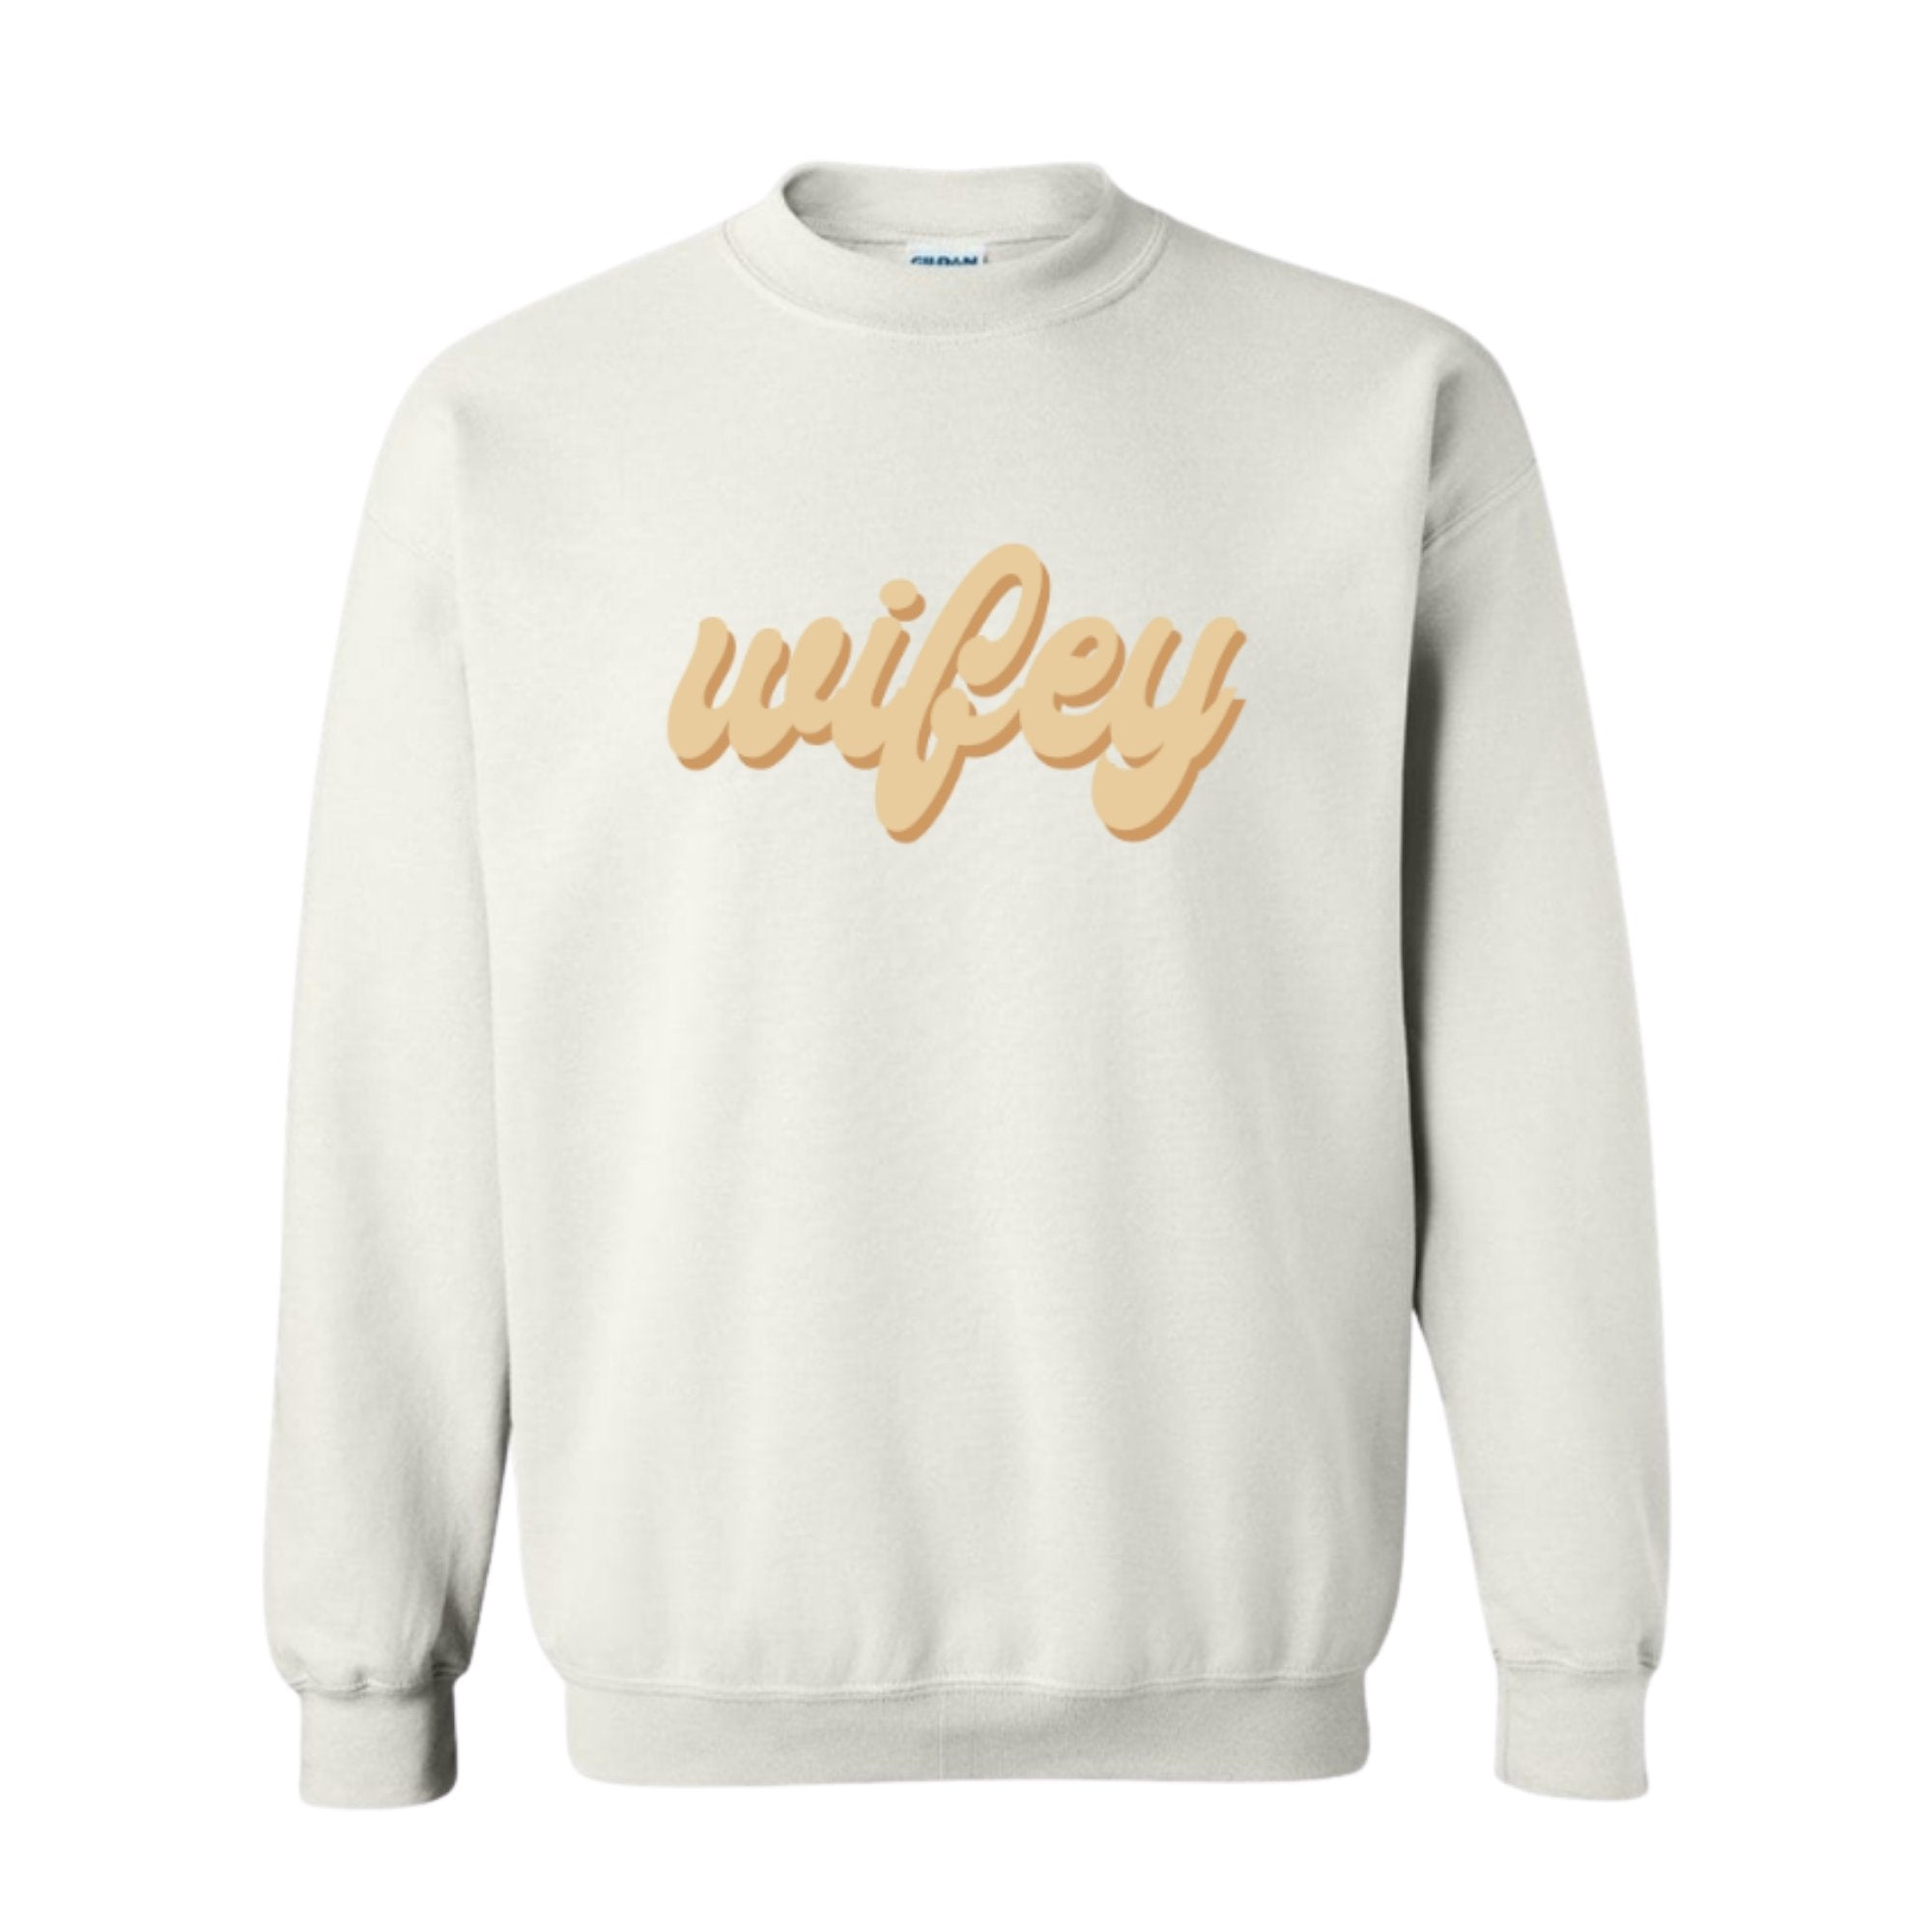 Wifey Sweatshirt - White - Sprinkled With Pink #bachelorette #custom #gifts